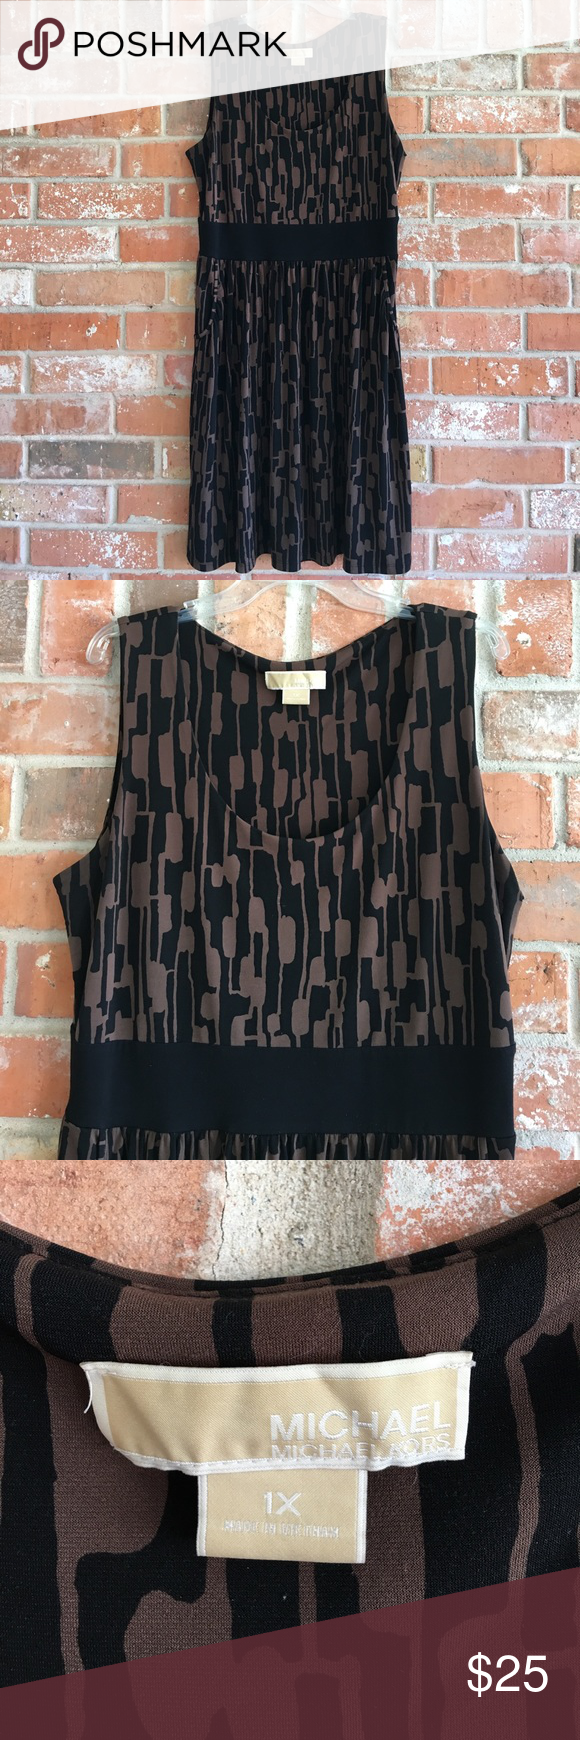 """Classy Stretchy Dress By MK Plus Size 1X This dress is so pretty and in great condition. No rips stains or tears. It measures 23"""" underarm to underarm without stretching any and waist measures 20"""" without stretching any. It is 42"""" long. Get this one while you can💕💕😘😘 Michael Kors Dresses Midi"""